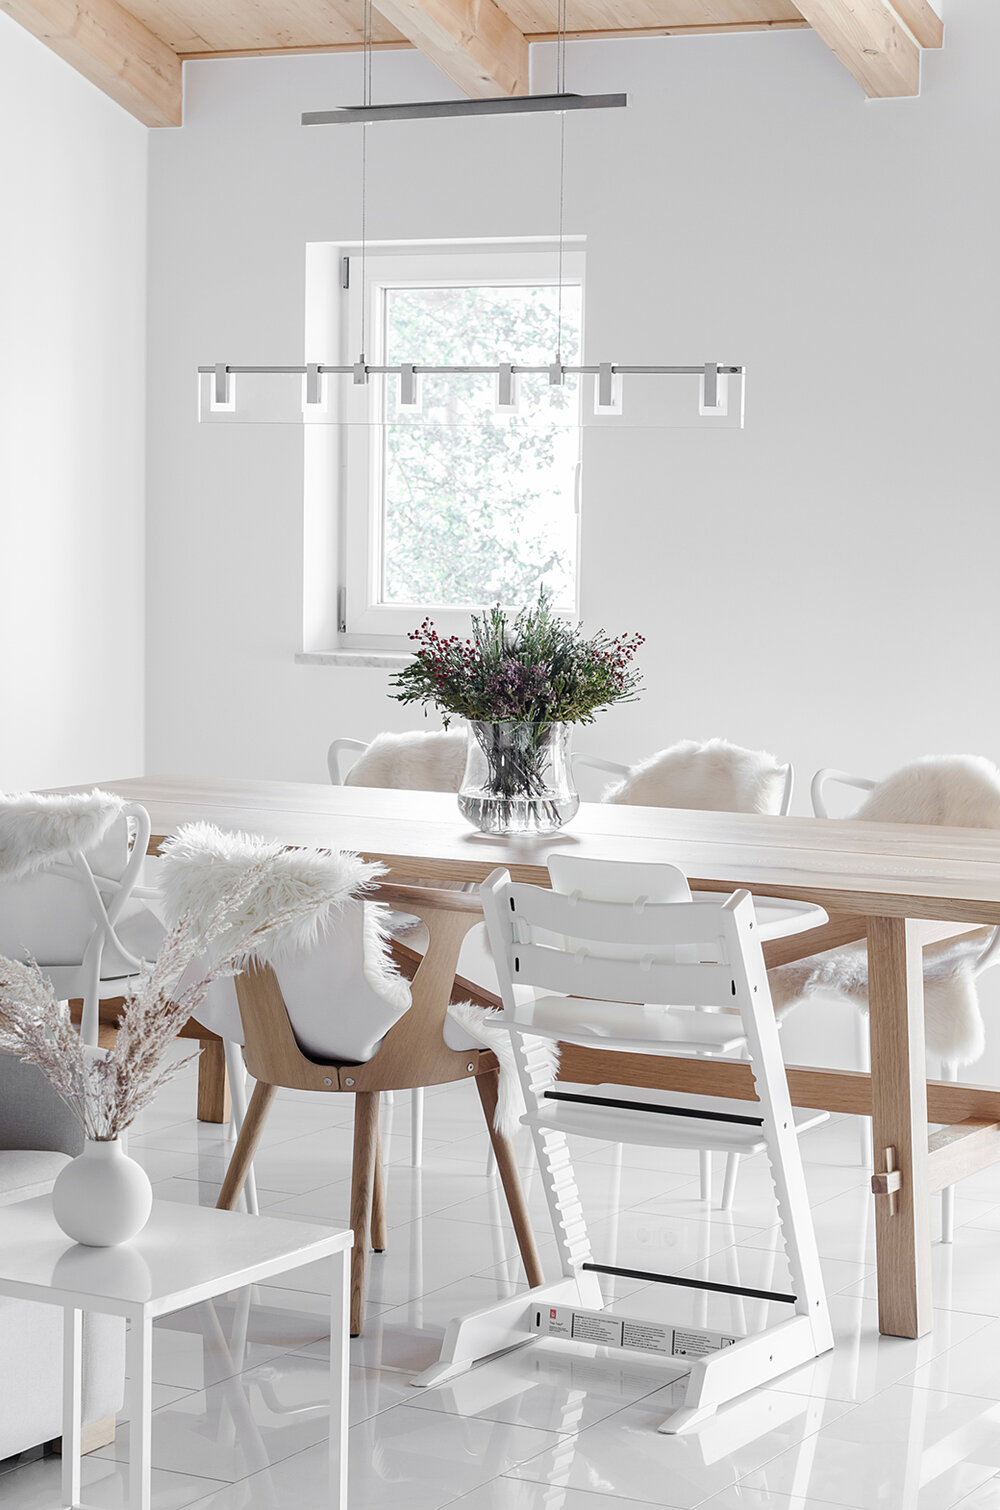 Bright, Clean Scandinavian Style Home in Southern Germany